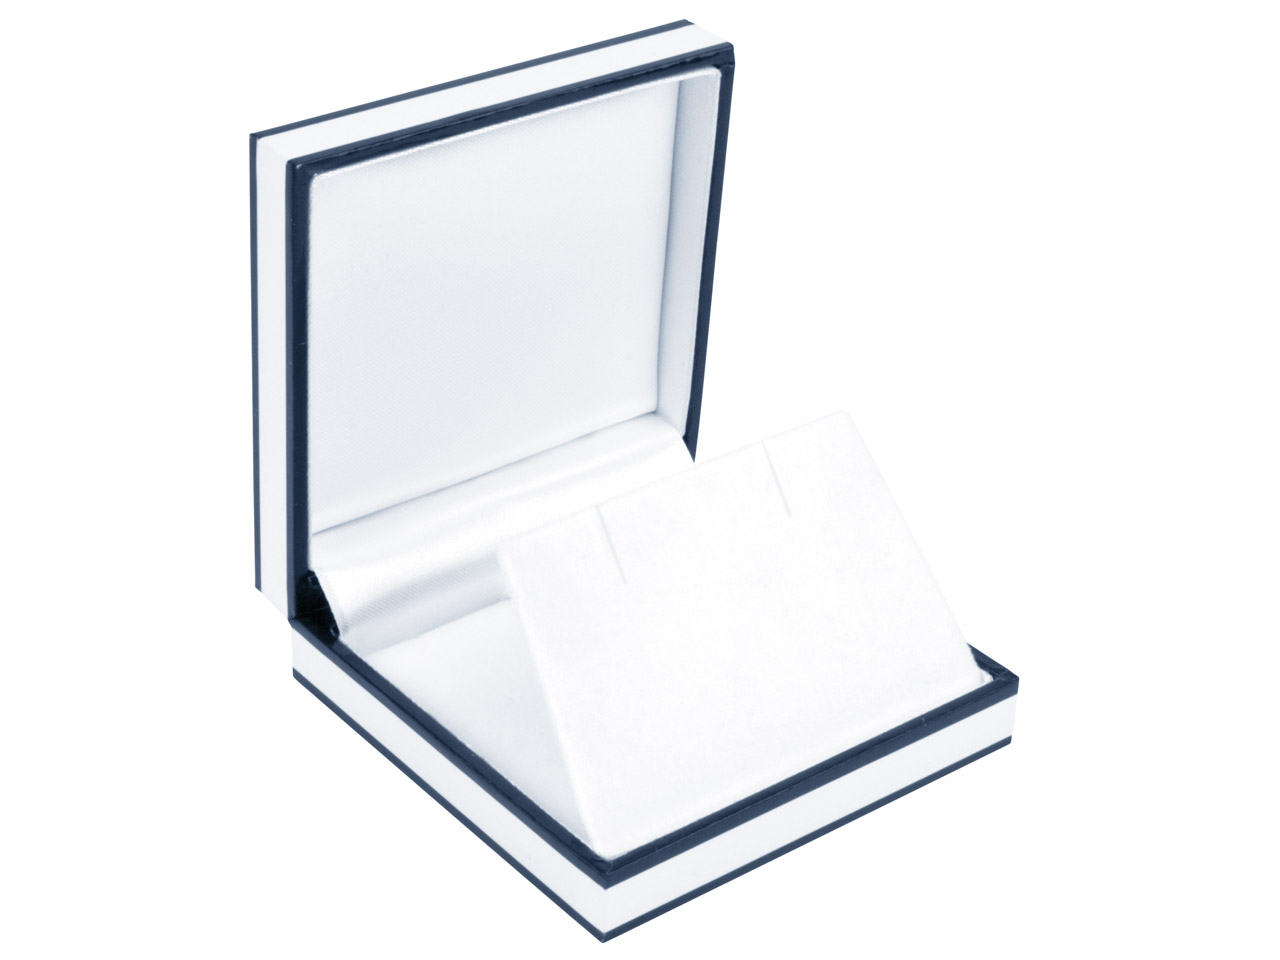 White Monochrome Universal Box